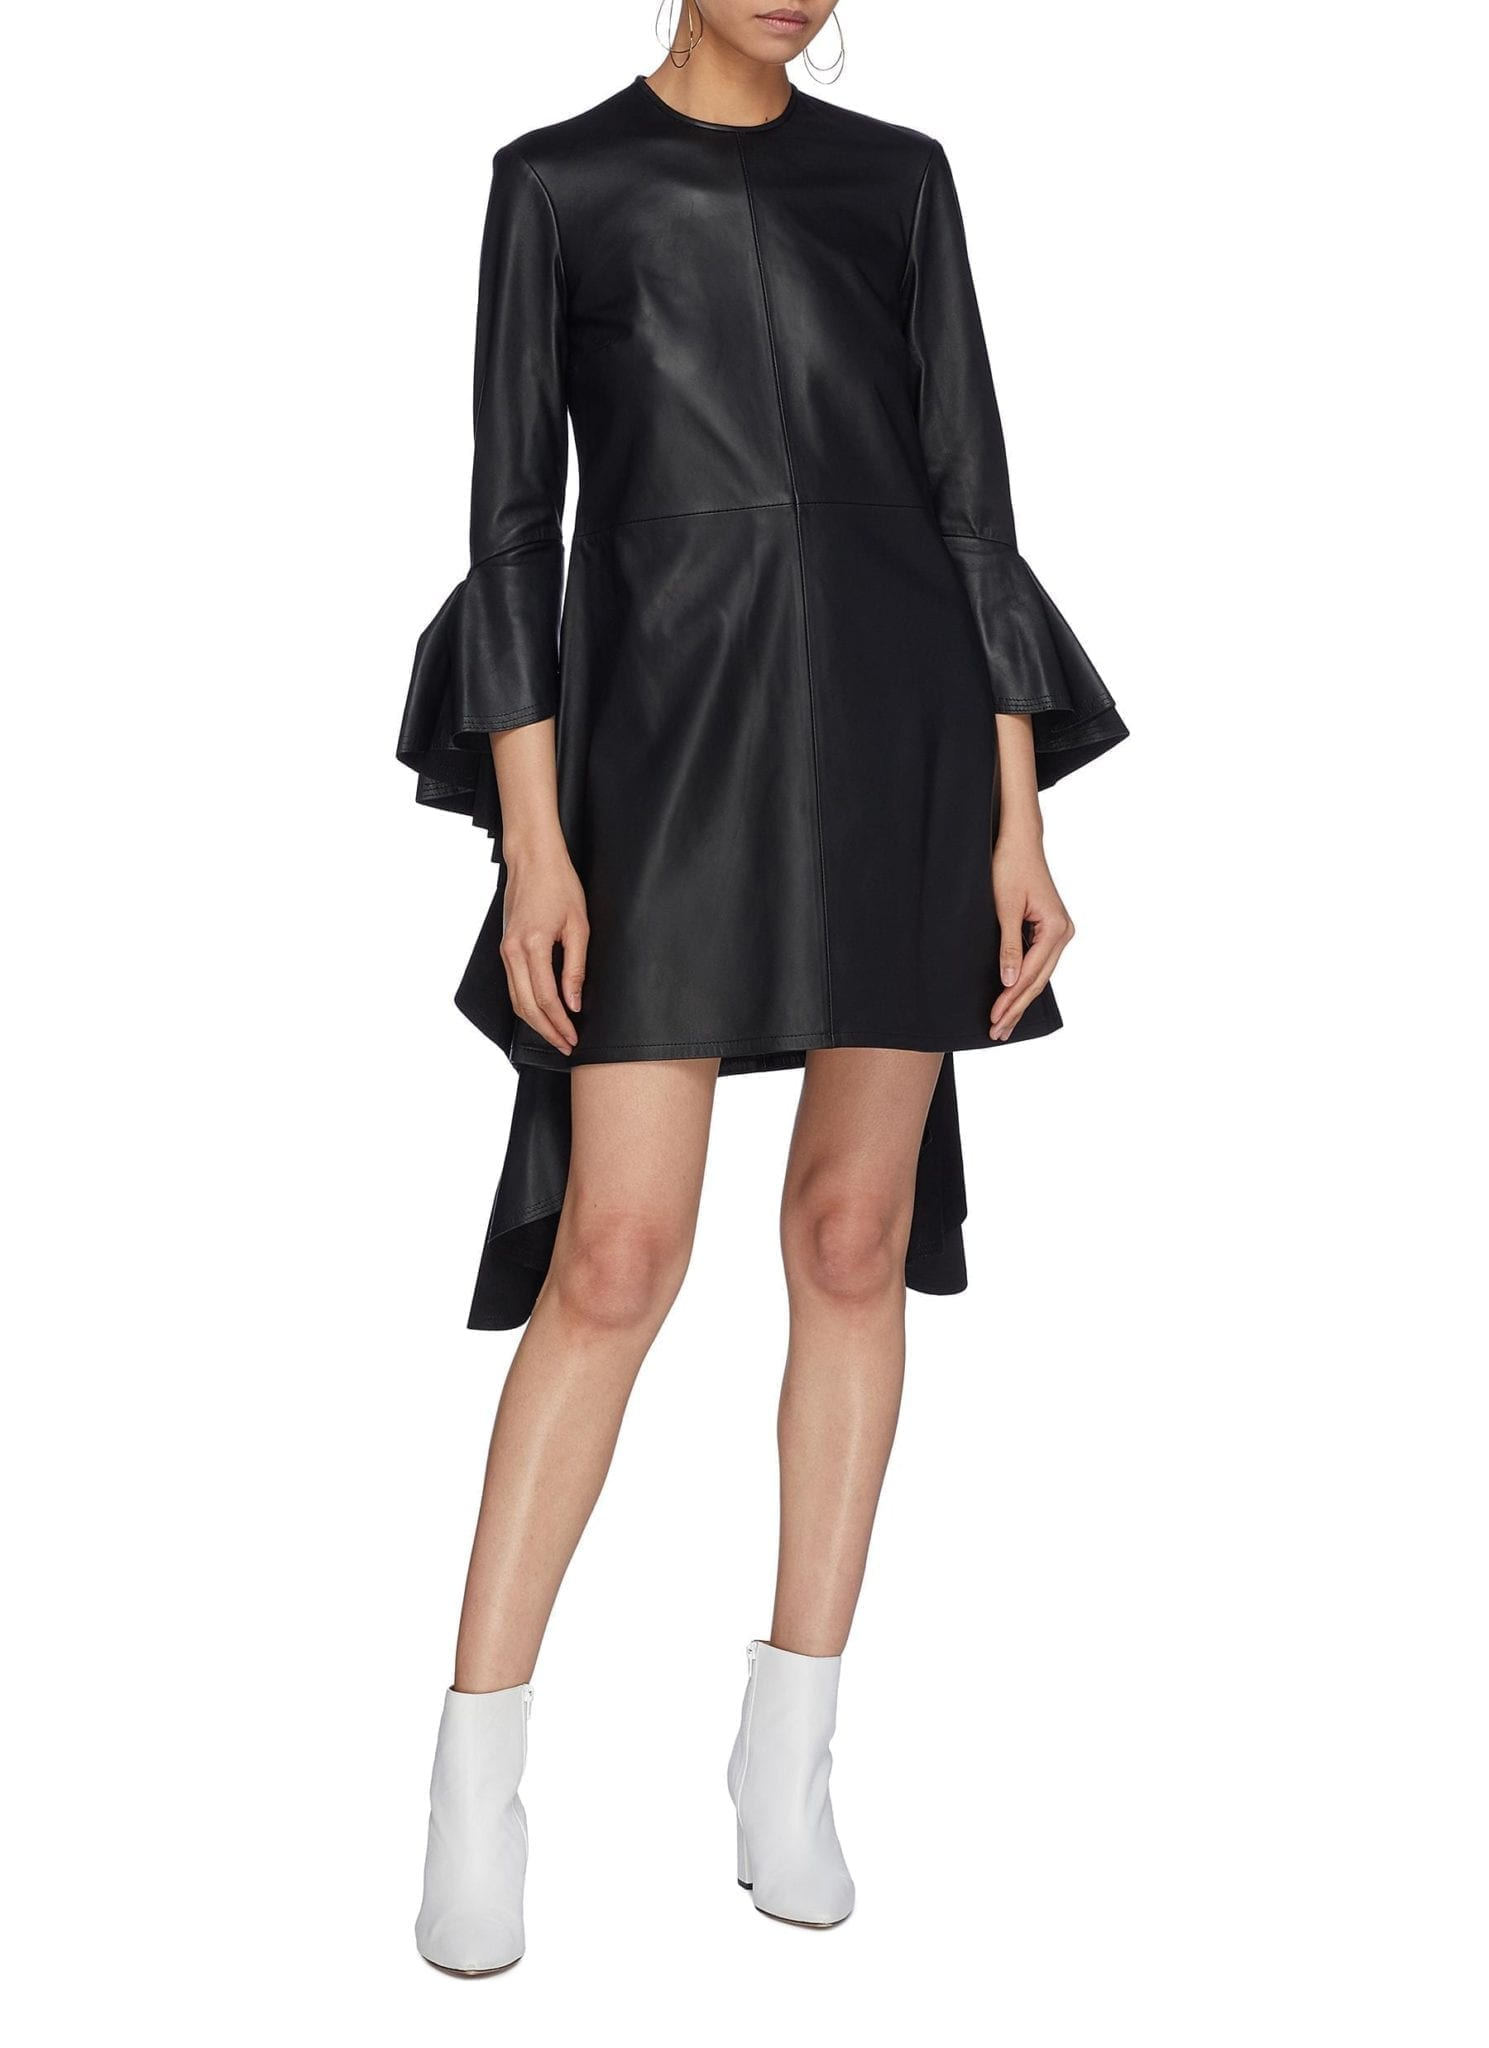 ELLERY 'Kilkenny' Ruffle Drape Sleeve Leather Mini Black Dress